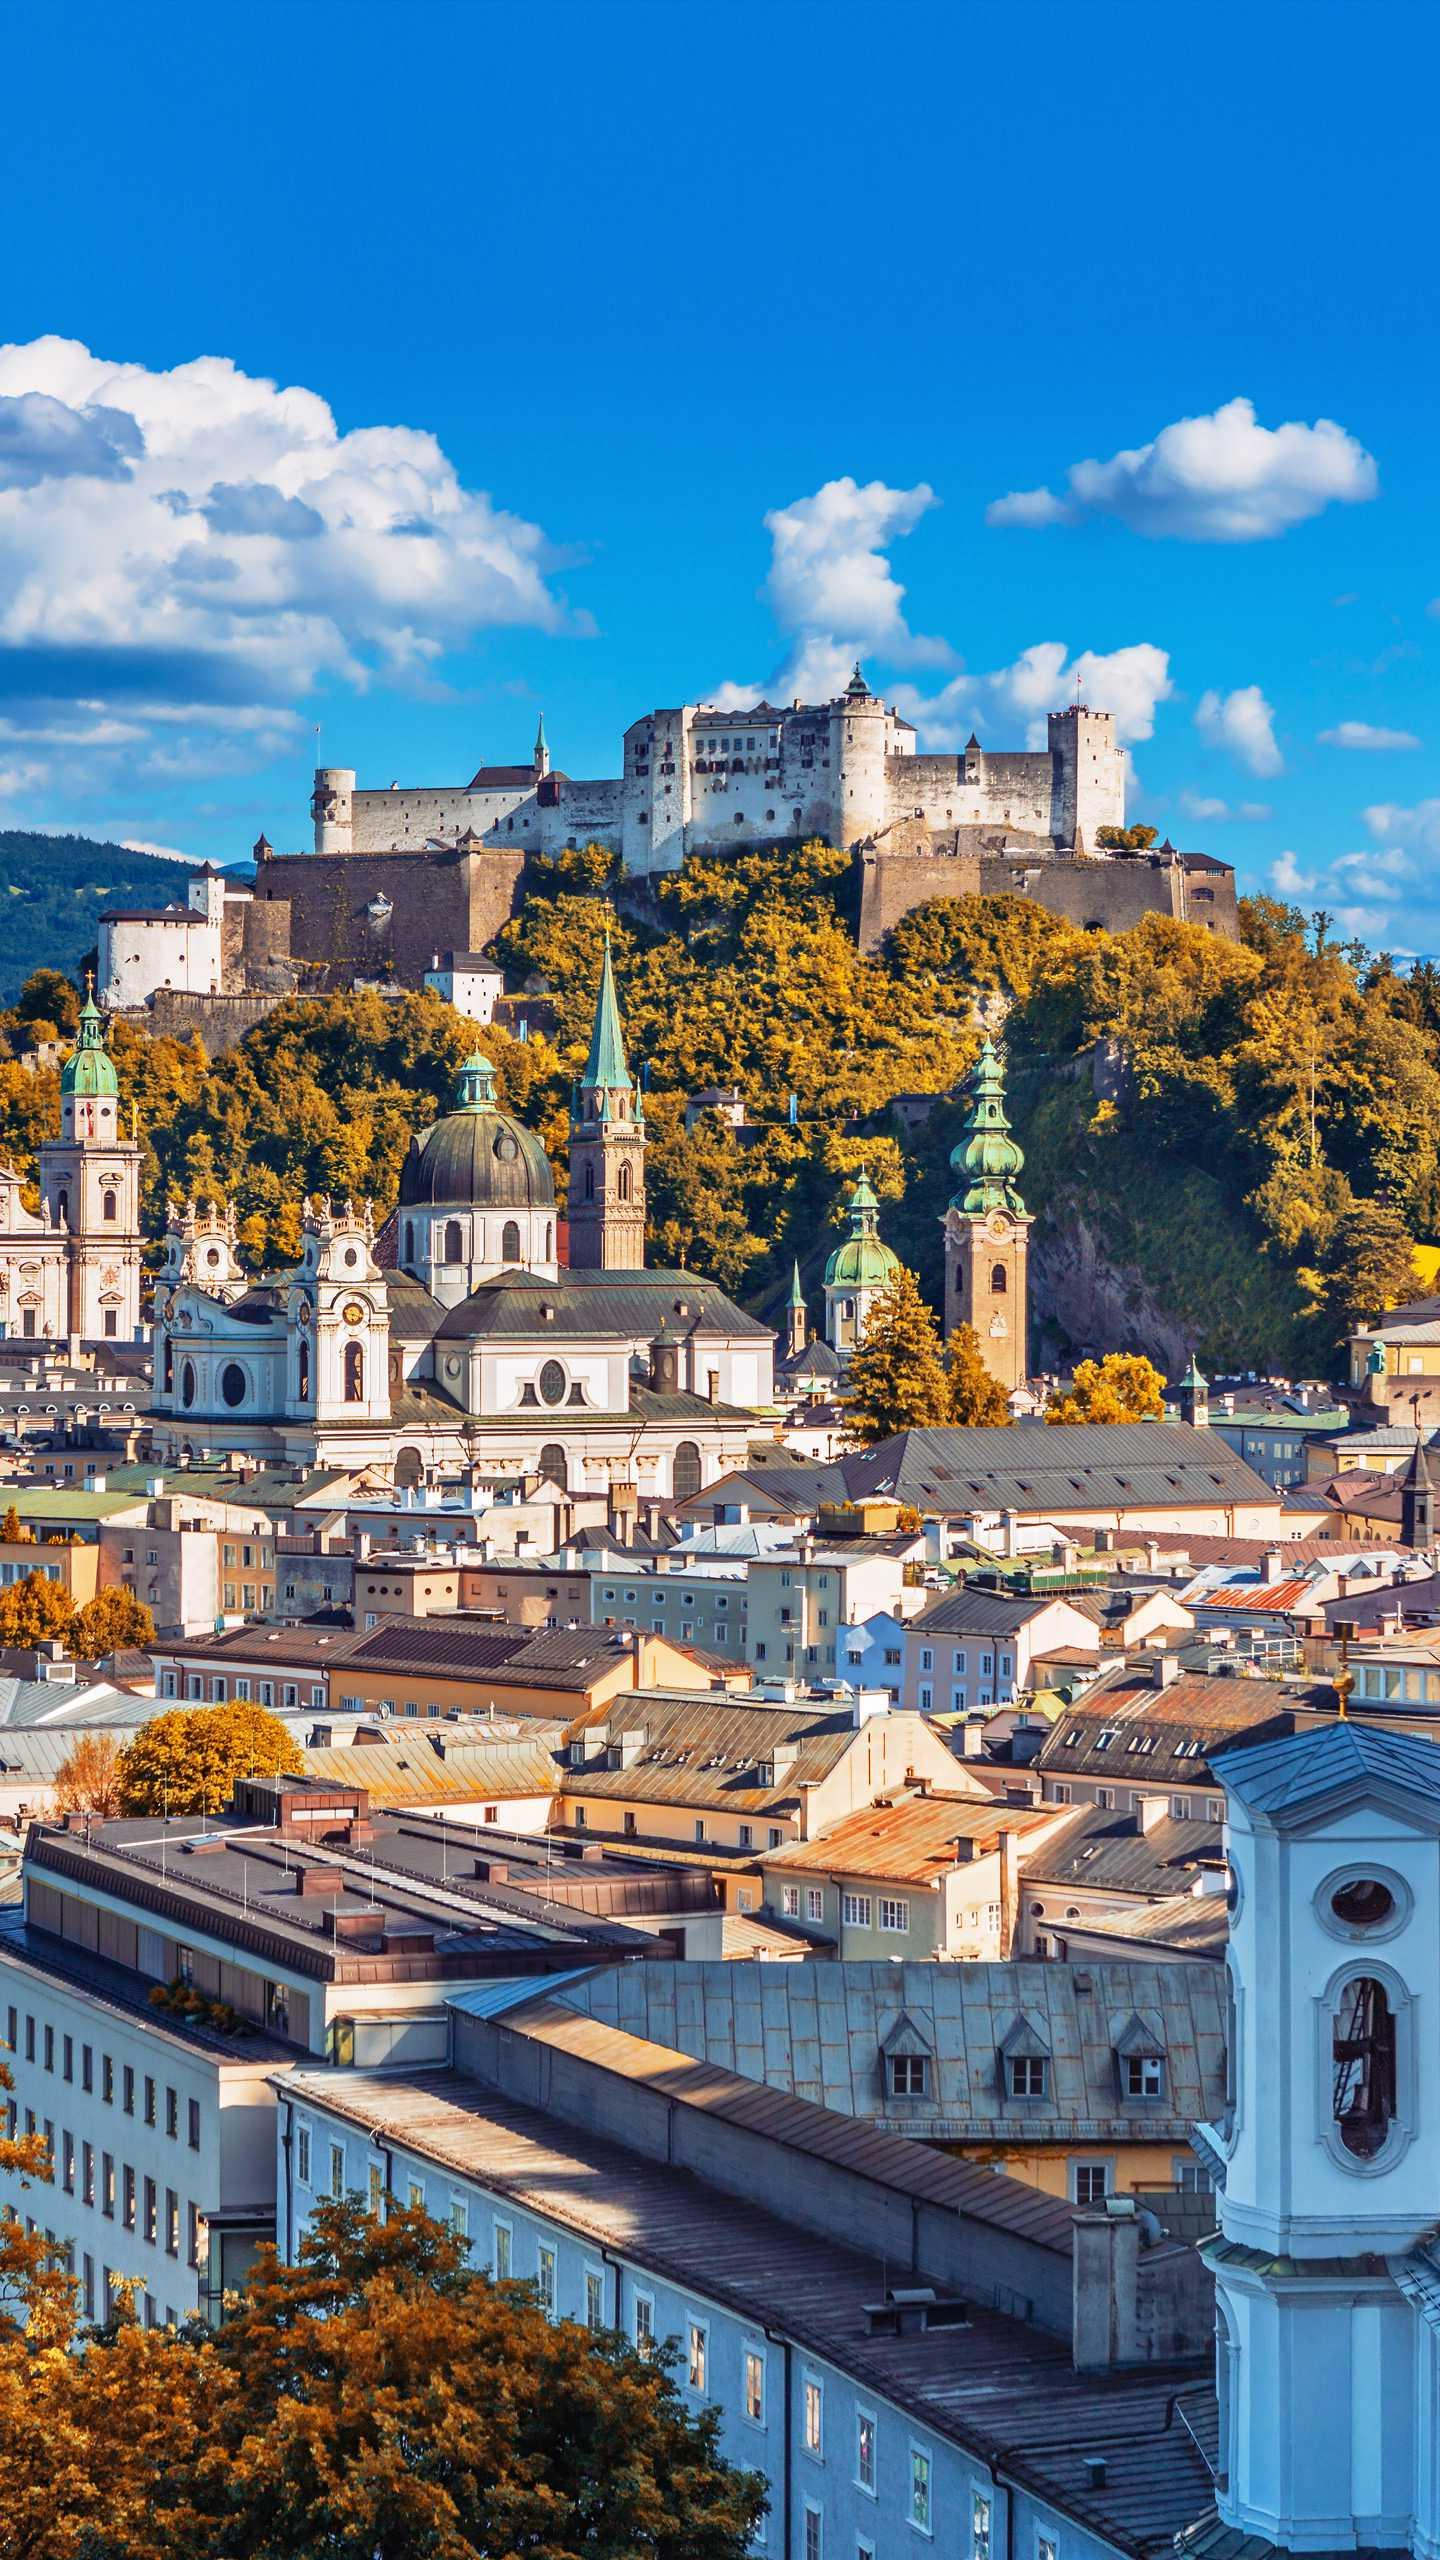 Austria - Salzburg. Located in the western part of Austria, it is the gate of the Alps and is the oldest city in Austria.